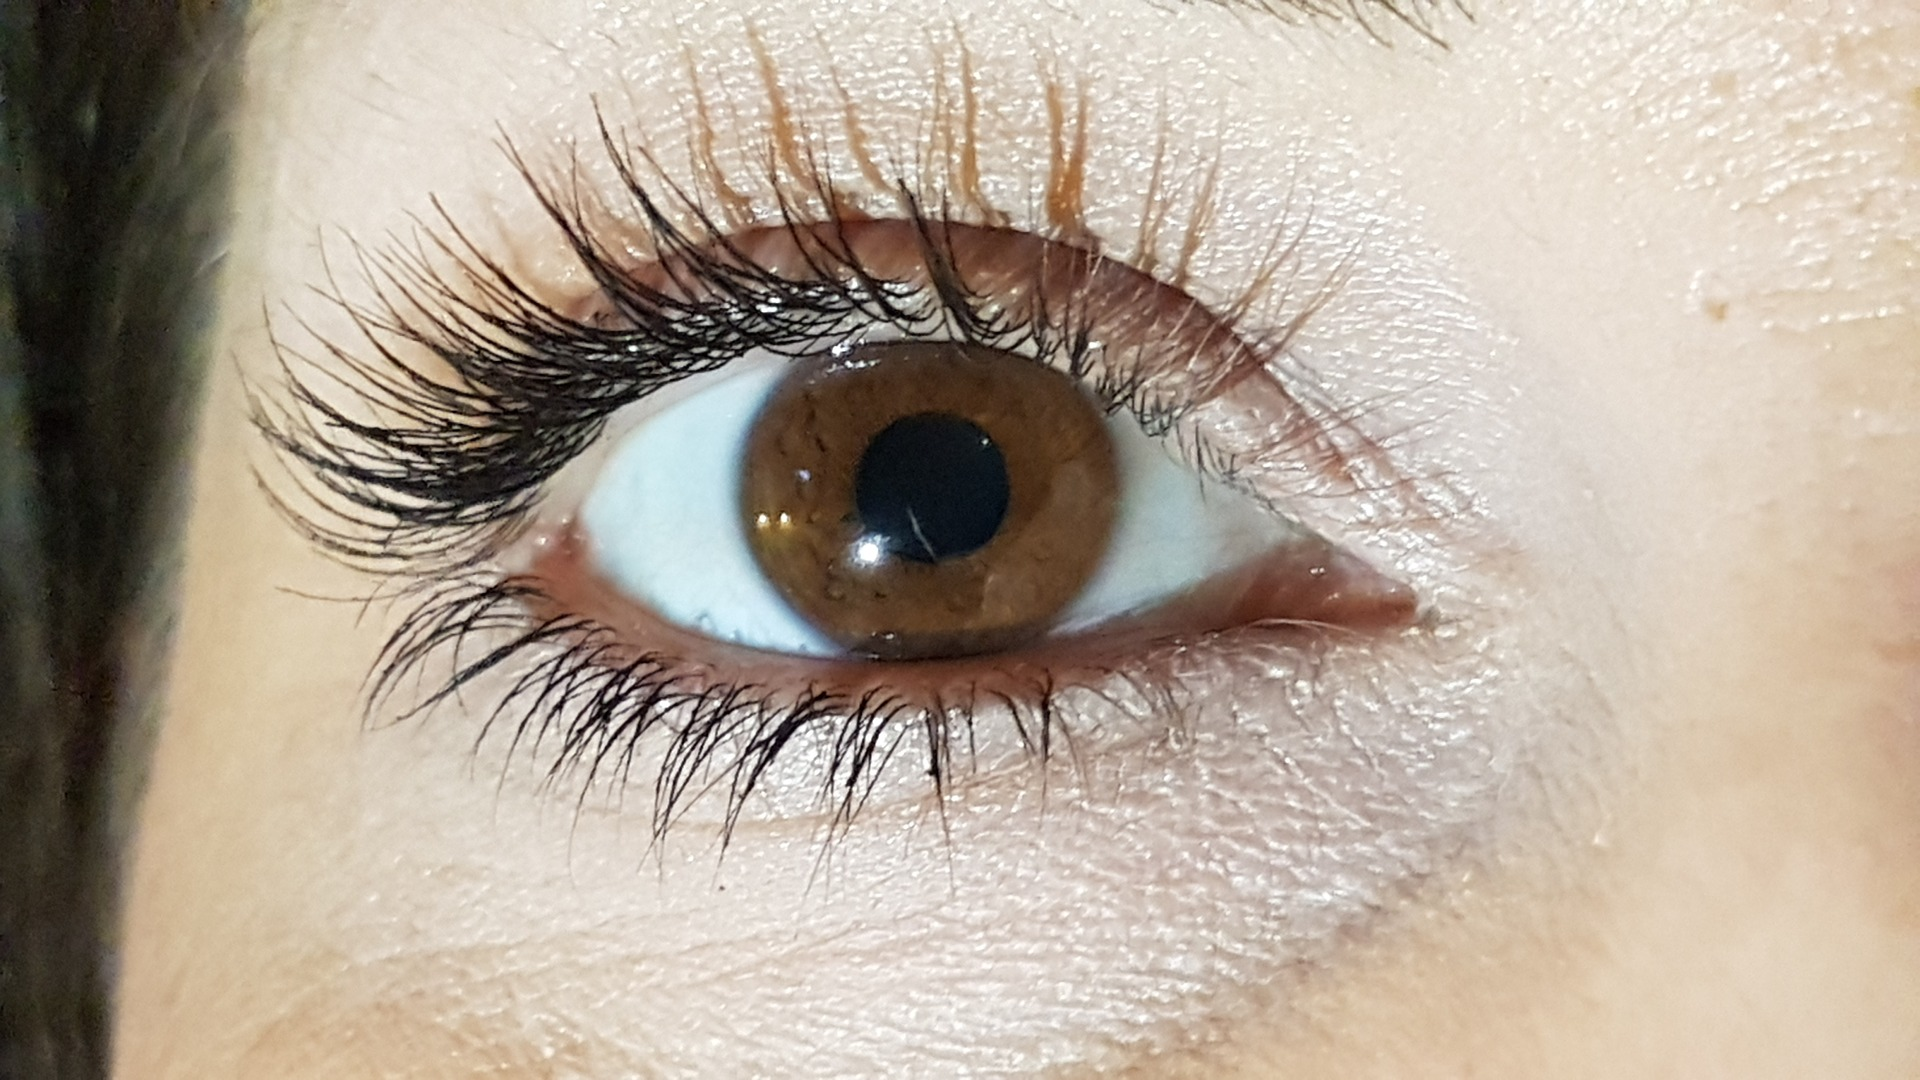 Womans Eyelashes Fall Out After Botched Extension Job Breaking